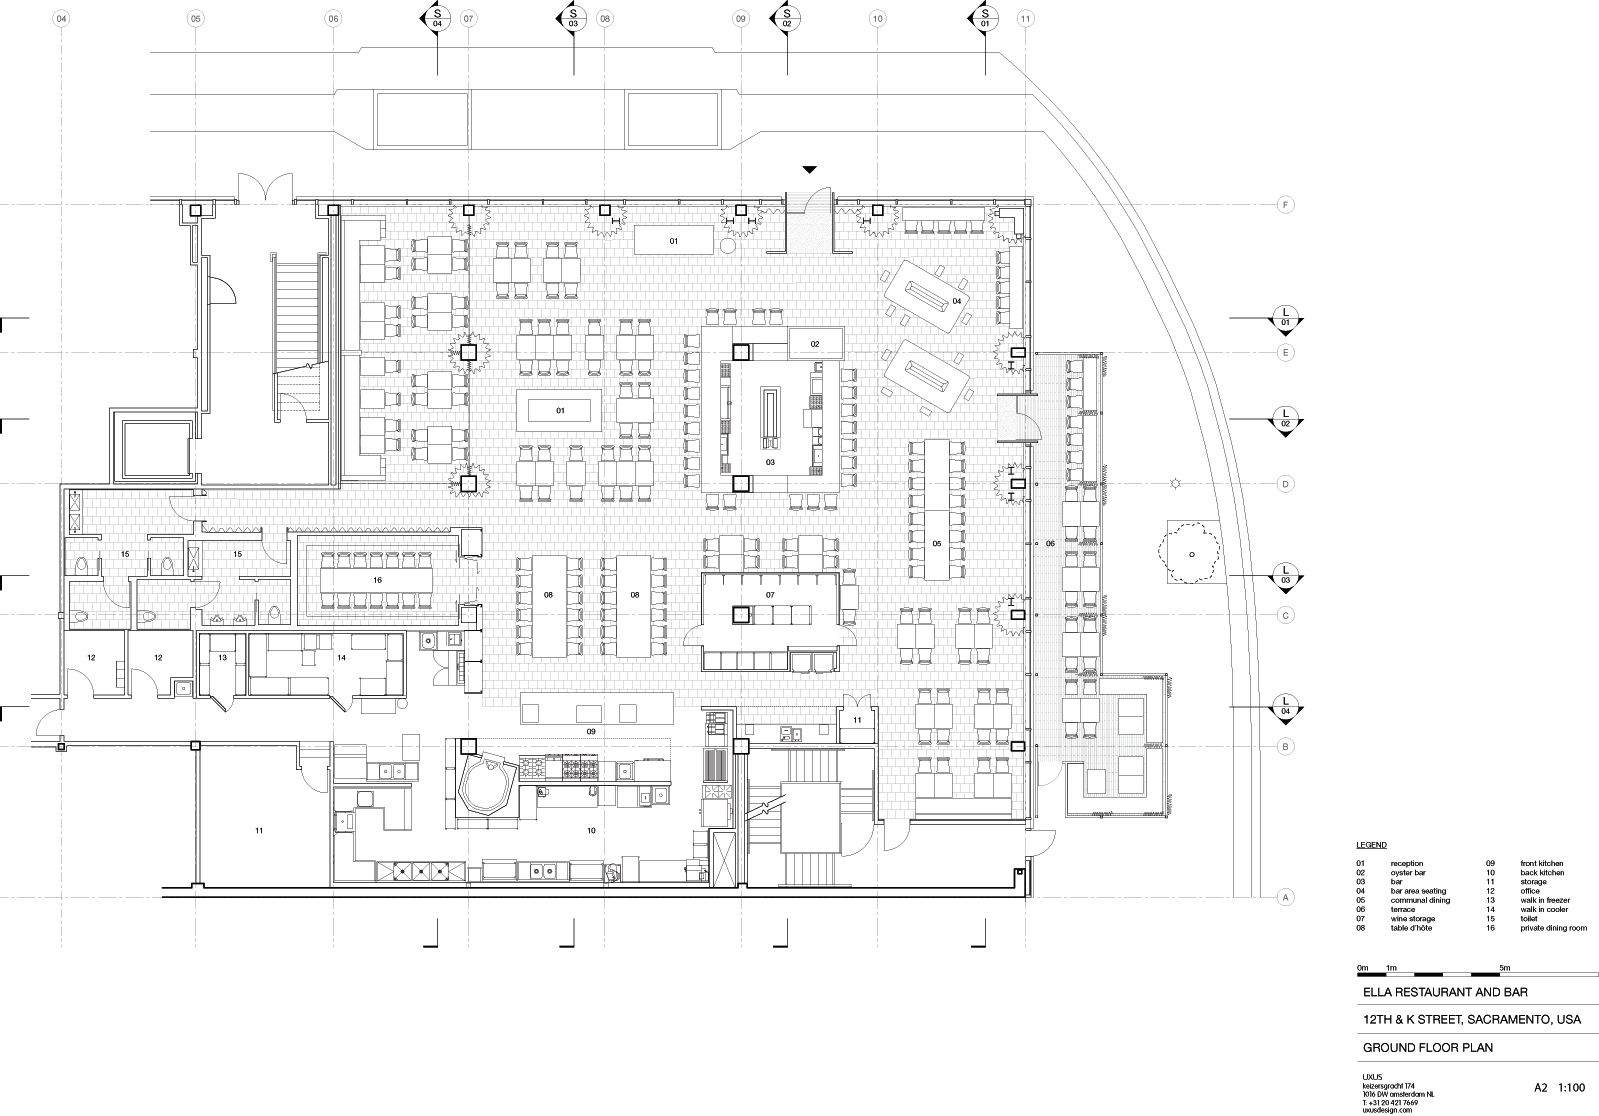 A floor plan ella 39 s dining 03 bar area 04 lounge 07 for Winery floor plans by architects